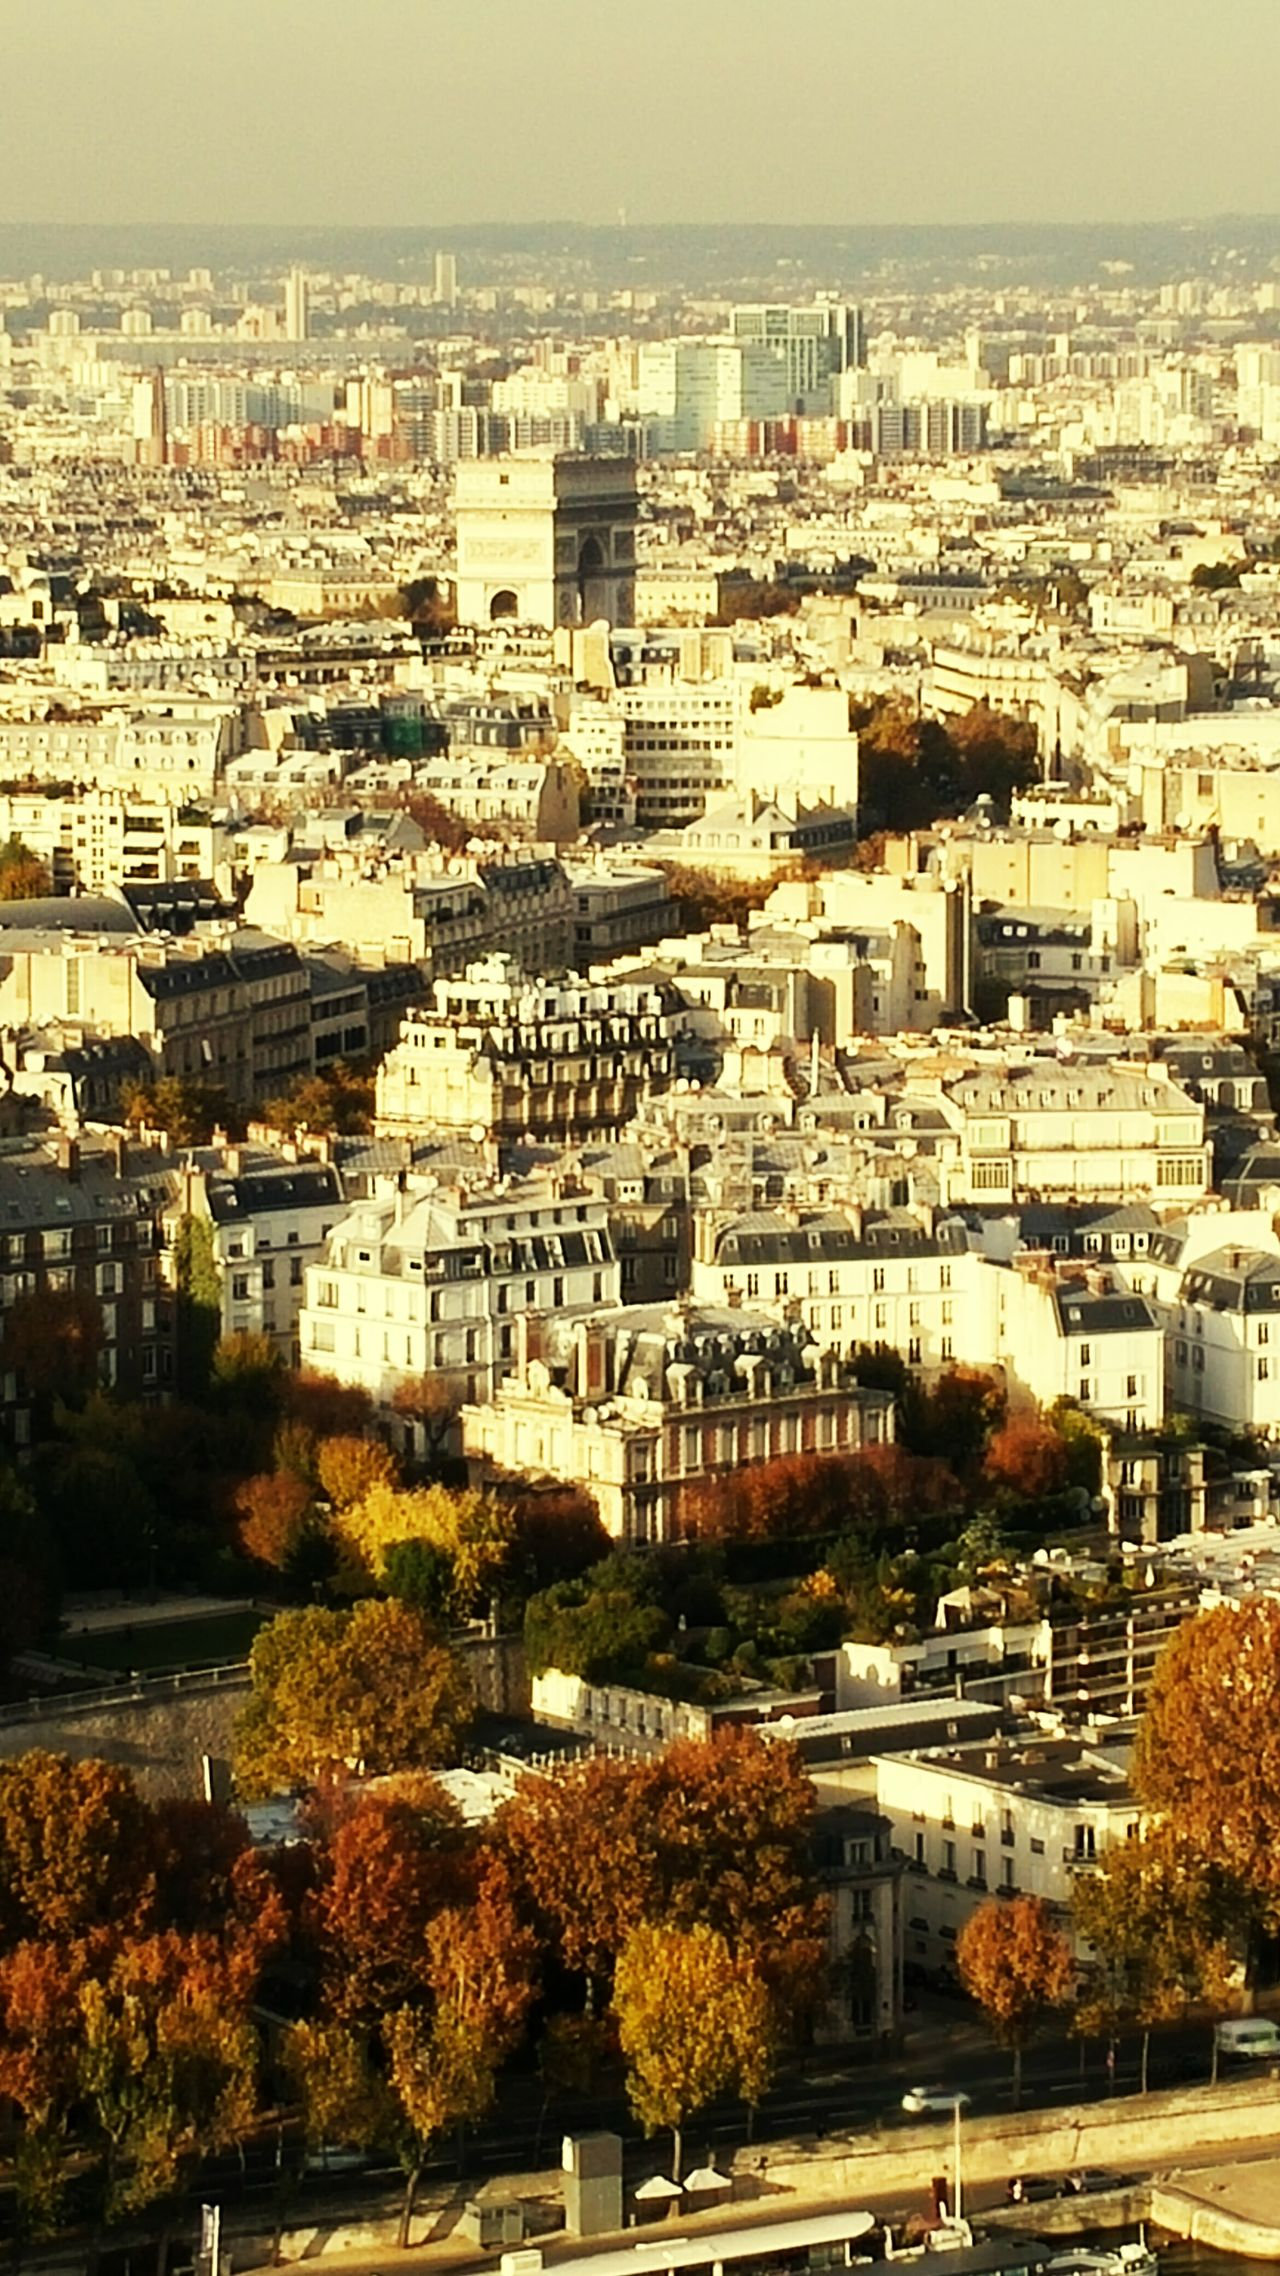 Cityscape City Built Structure Outdoors Day Photography Paris, France  EyeEm Best Shots Travel Destinations Urban Skyline Aerial View Trowbackthursday Travel Like4like City LGg3photography Automn